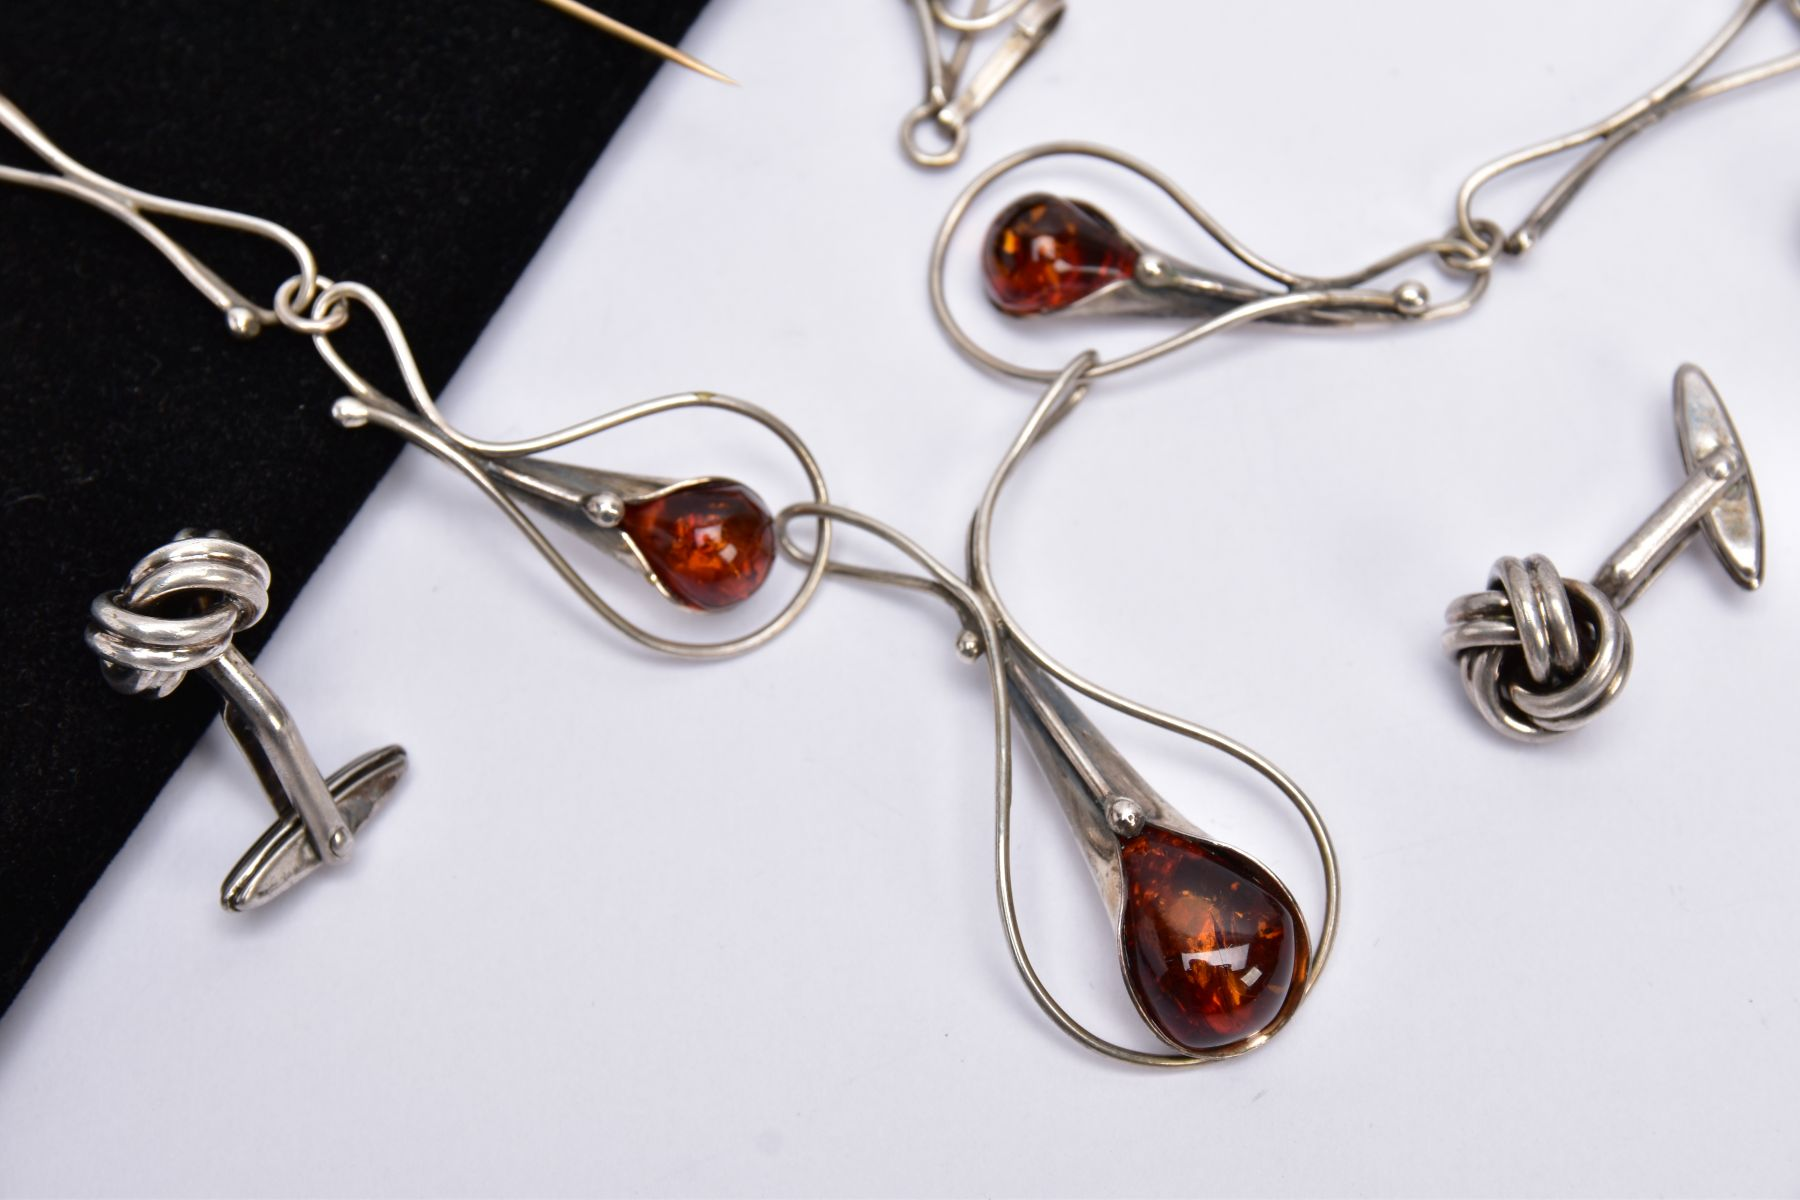 A SILVER AMBER NECKLACE, SILVER CUFFLINKS, STICK PIN, CUFFLINKS, ETC, the silver necklet designed - Image 2 of 5